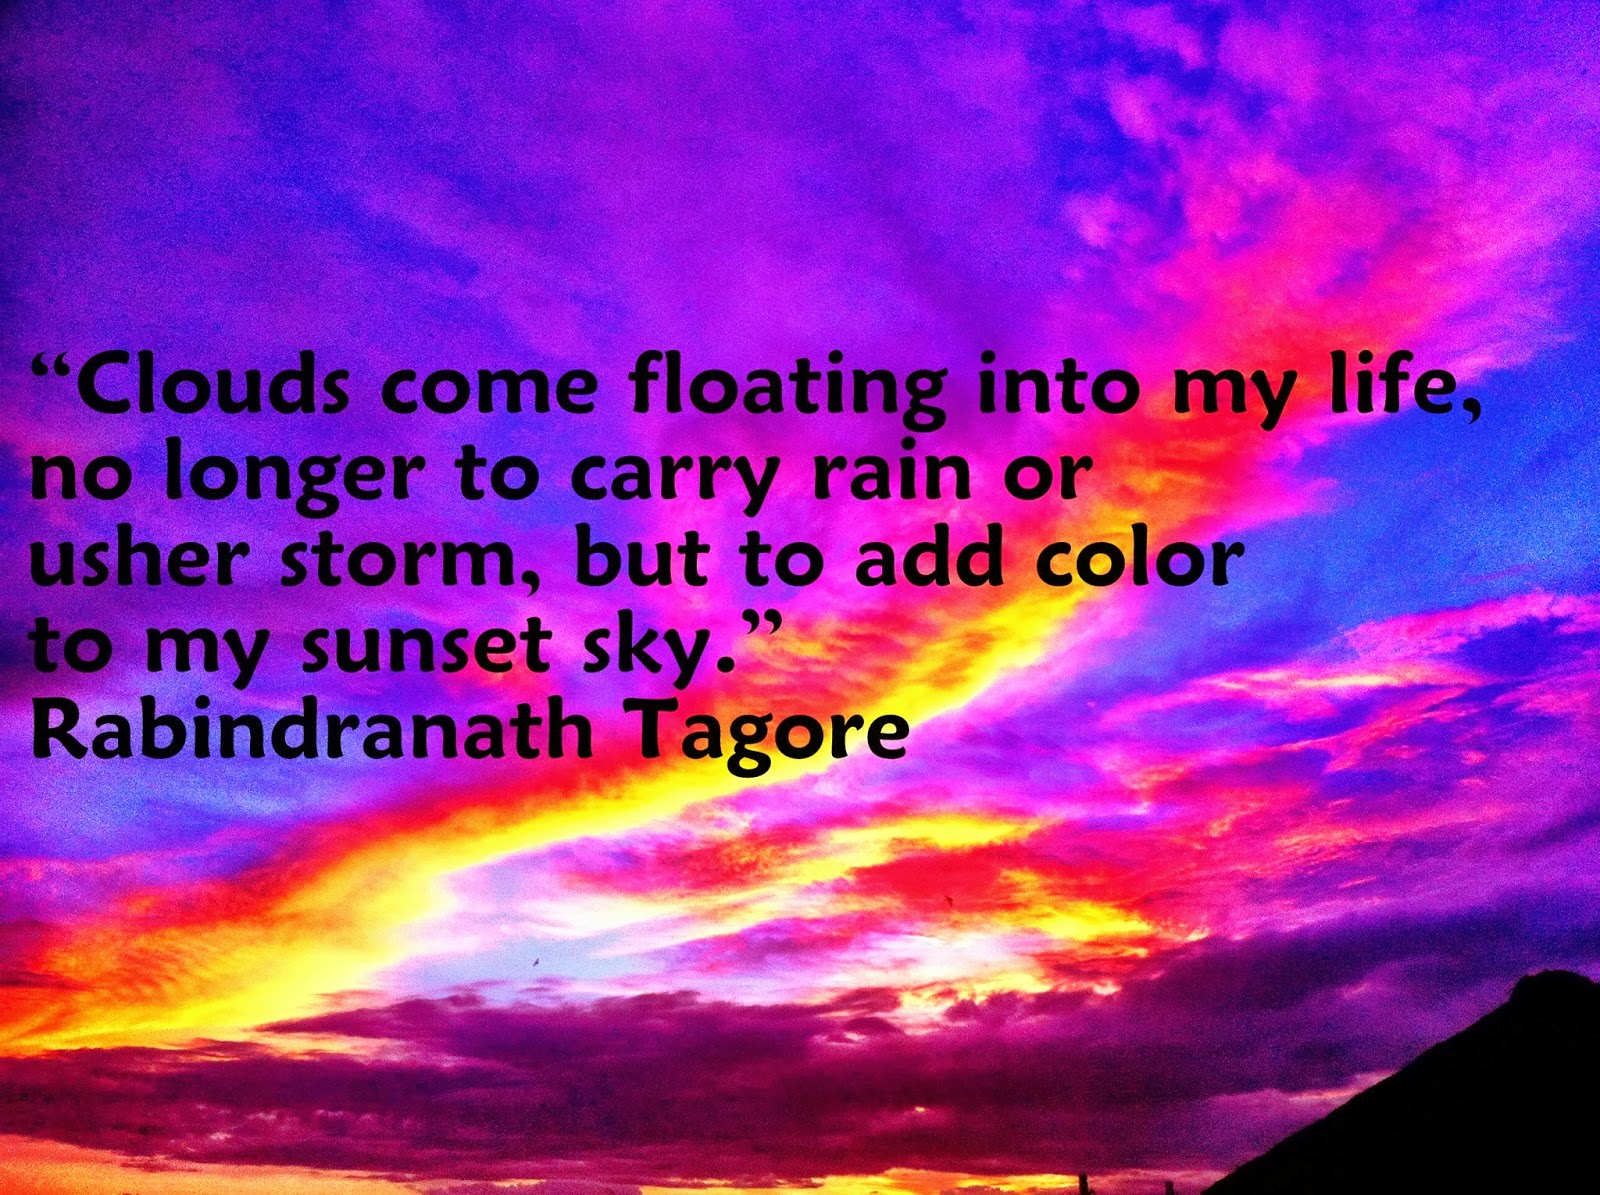 Quotes That Inspire Ten Great Quotes To Inspire You  Dharma Yoga Center New York City